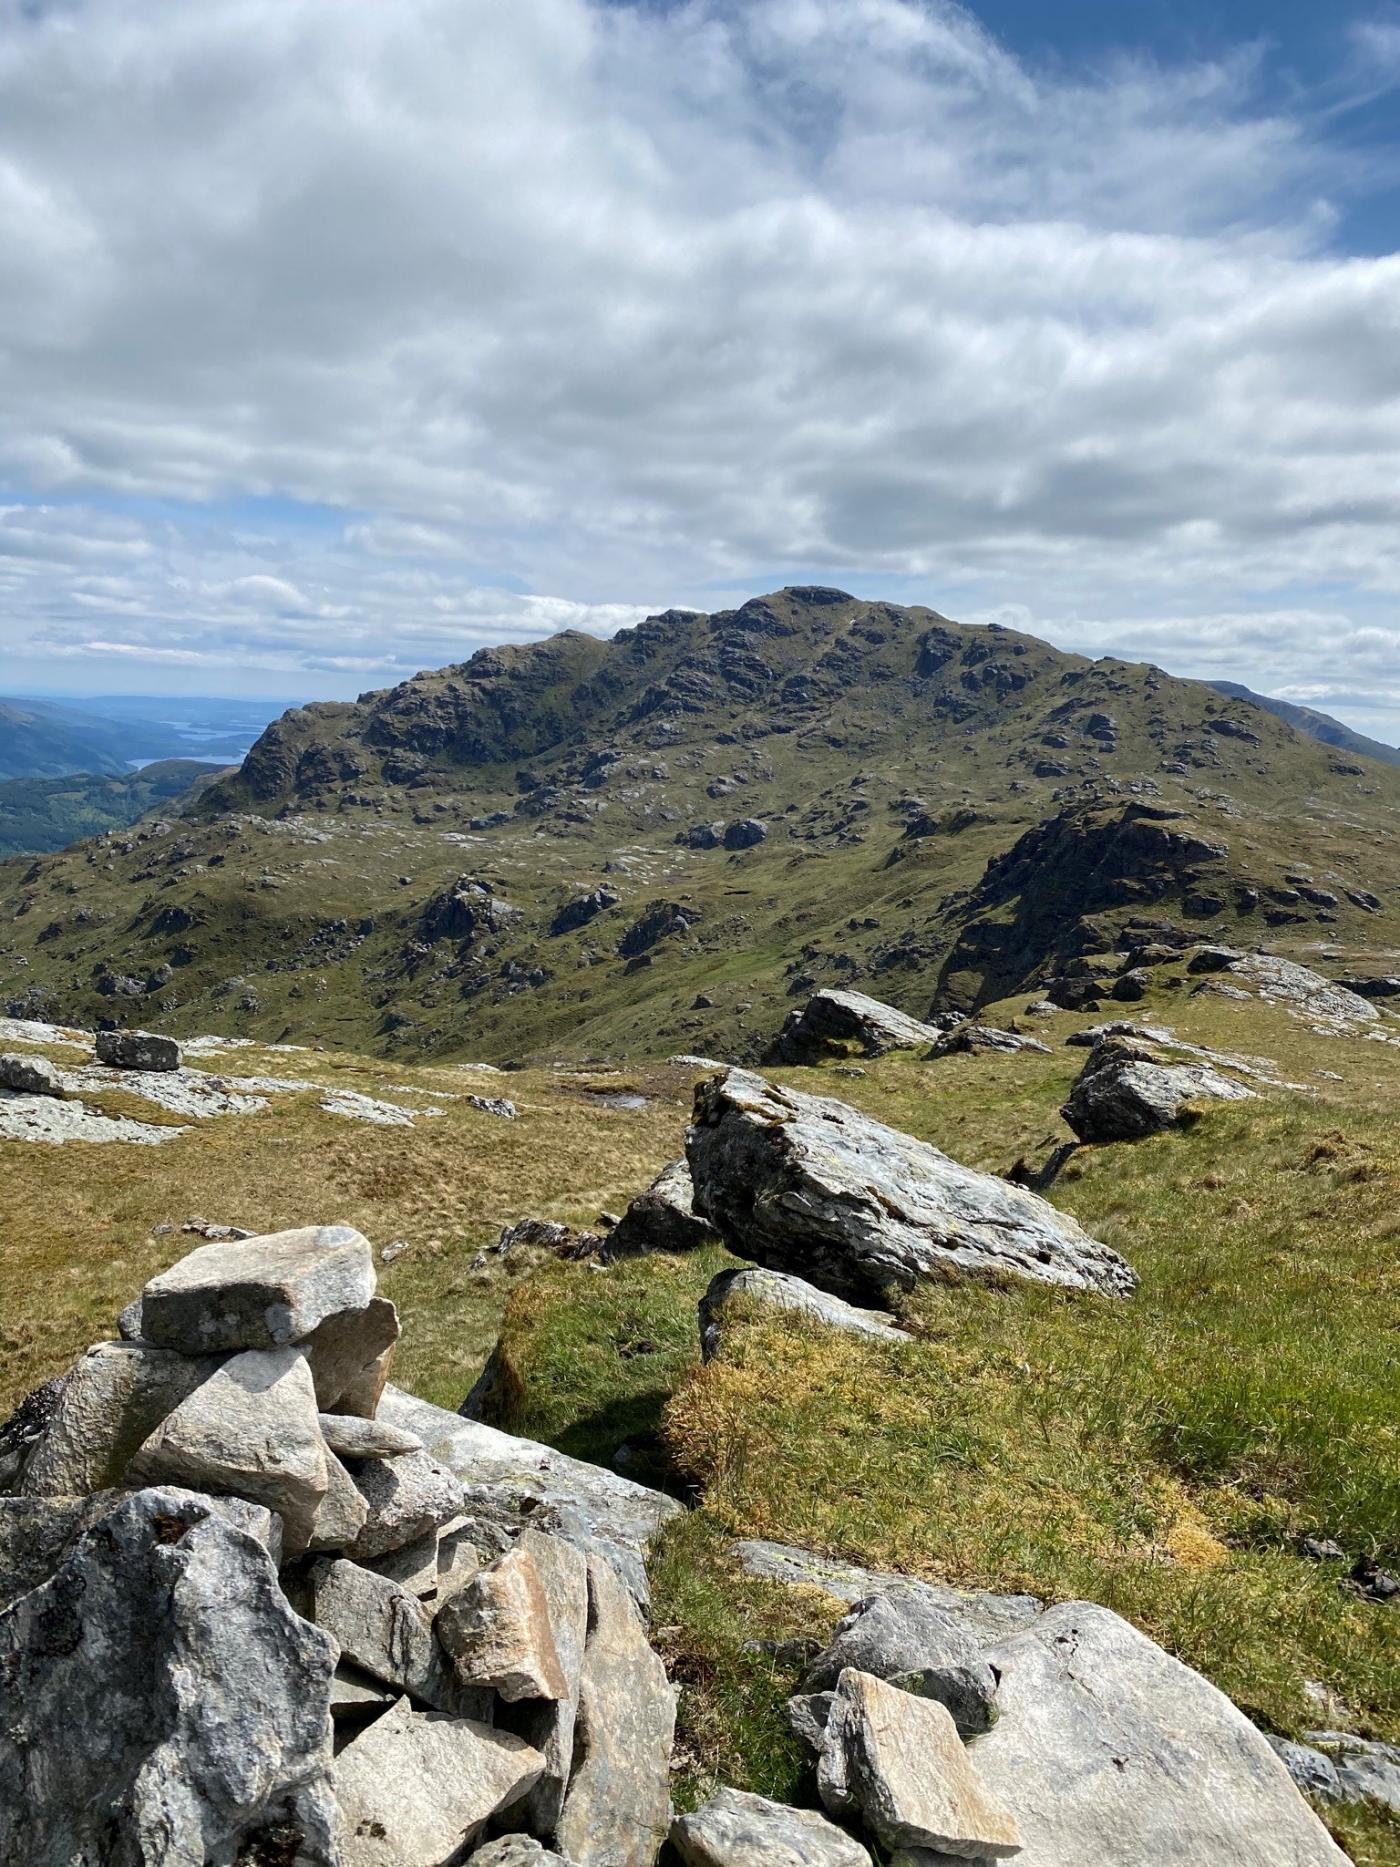 Summit of Beinn Dubh looking across to Ben Vane. This was taken on a bright and sunny 11th June.